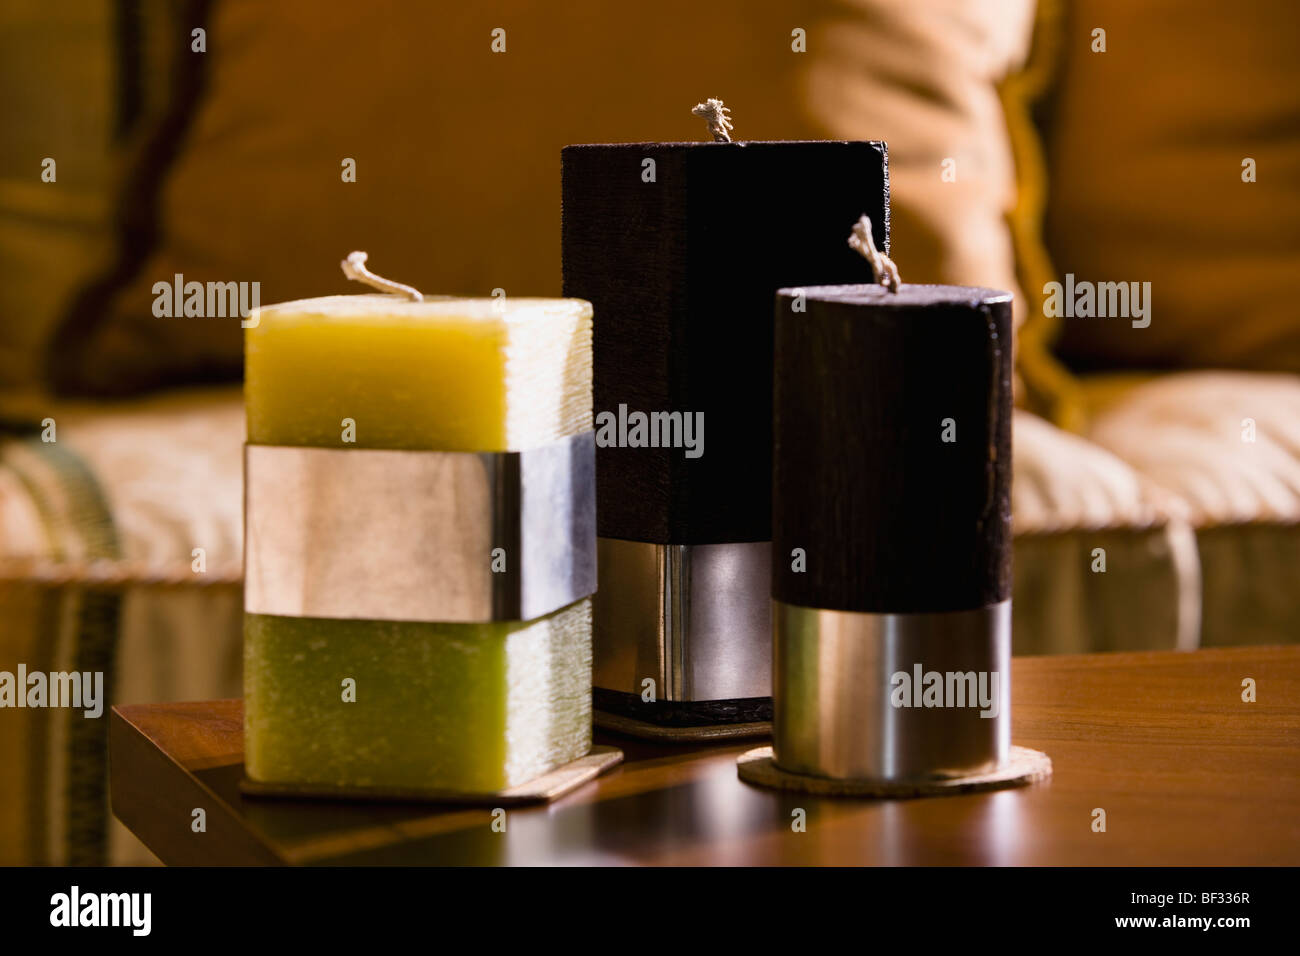 Close-up of candles on a table - Stock Image